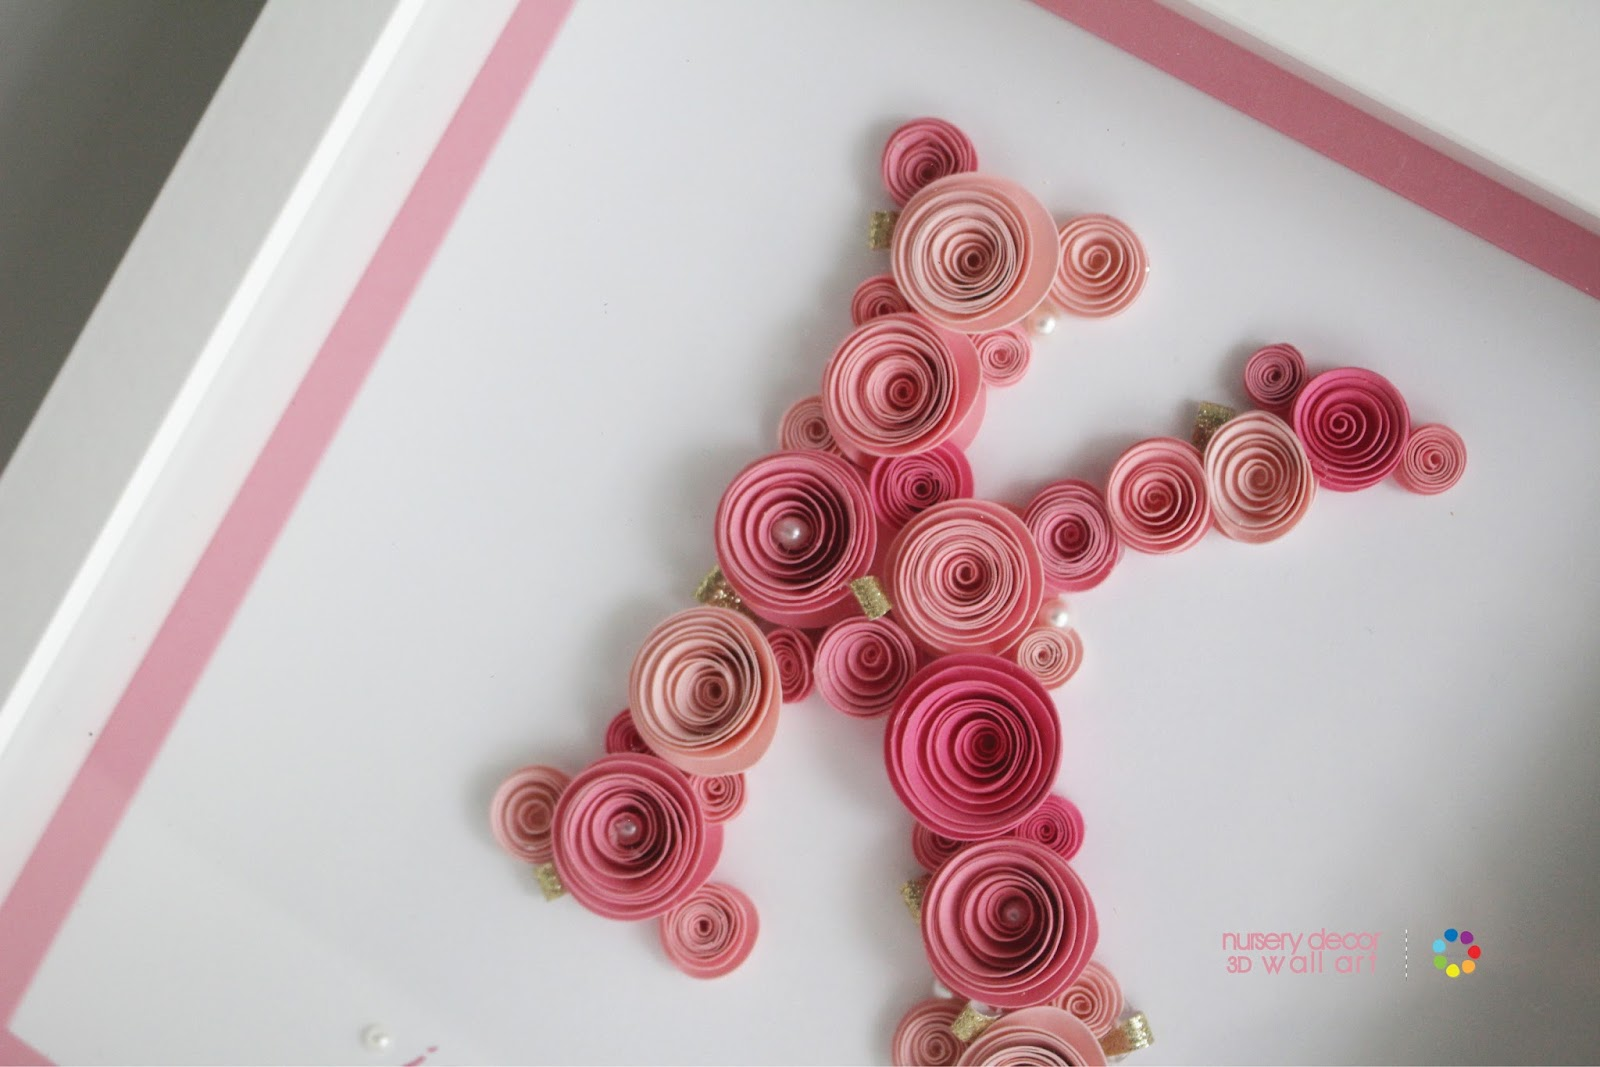 Rose Wall Decor nursery decor letter-paper roses | wall art | party favors place